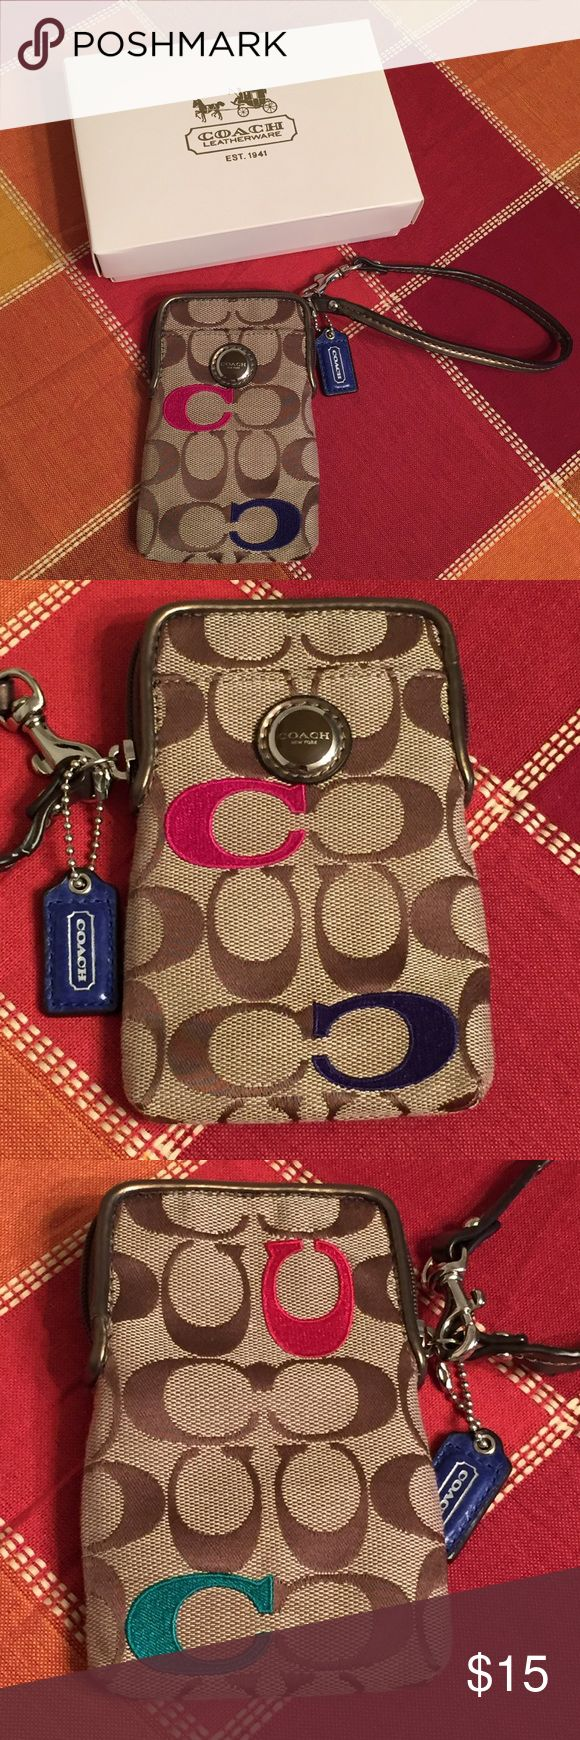 "COACH Wristlet Khaki Multicolor Signature C Print * Brand: Coach * Style: Small Wristlet * Color: Khaki with multicolor C's * Measurements: Approximately 3.25"" x 5.25"". Strap is a 6"" drop * Description: Has 3 card slots on one side & one slot on the other side. $20 bill is shown for size, not included in listing 😀 * Good preloved condition. There is a small scratch on the surface of the emblem & wear on the handle near the hang tag. The material is starting to peel away. Please see last…"